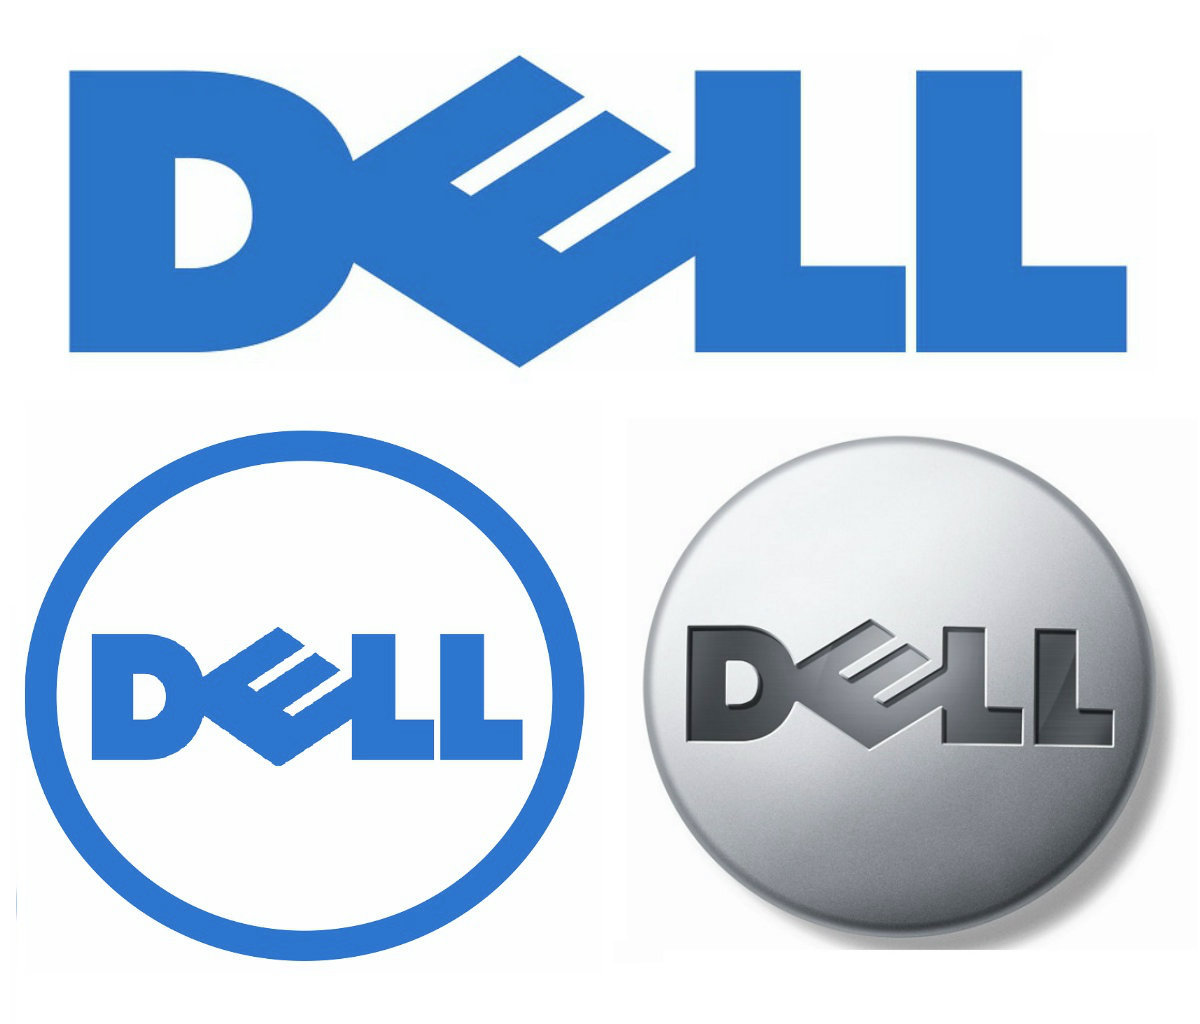 Dell logos logo sign logos signs symbols trademarks of dell logo biocorpaavc